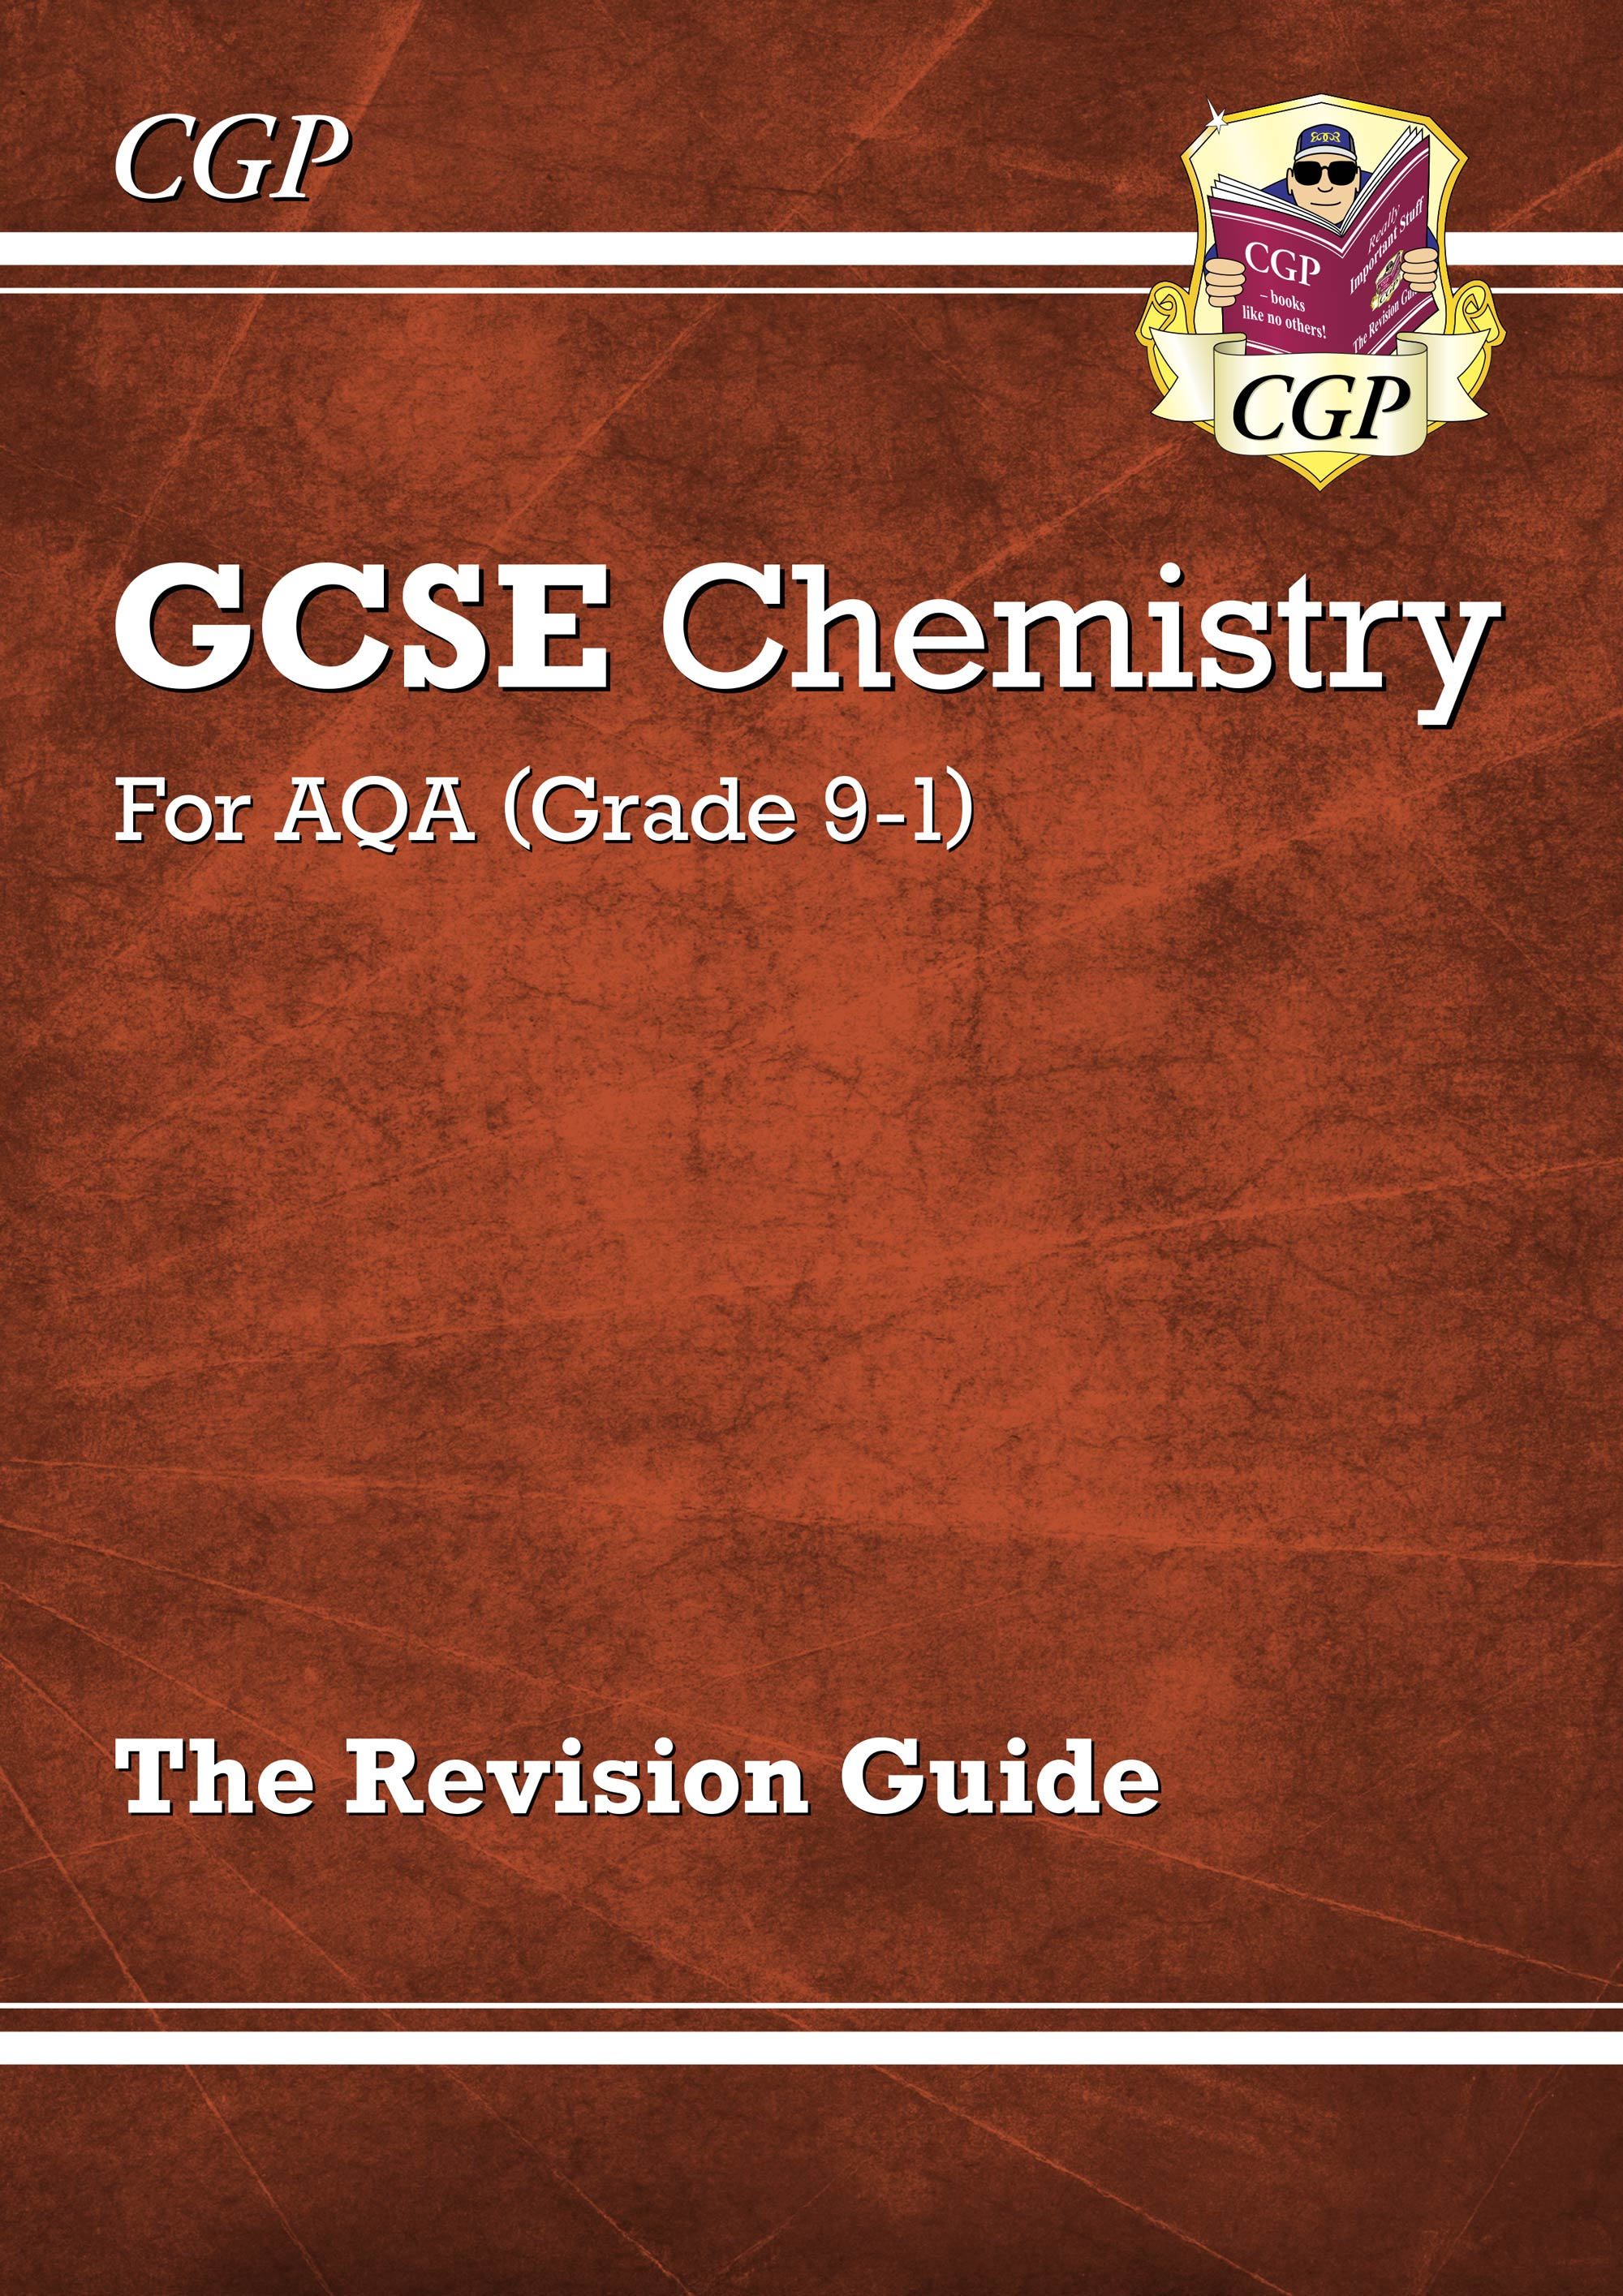 CAR45D - Grade 9-1 GCSE Chemistry: AQA Revision Guide - Higher (Online Edition)